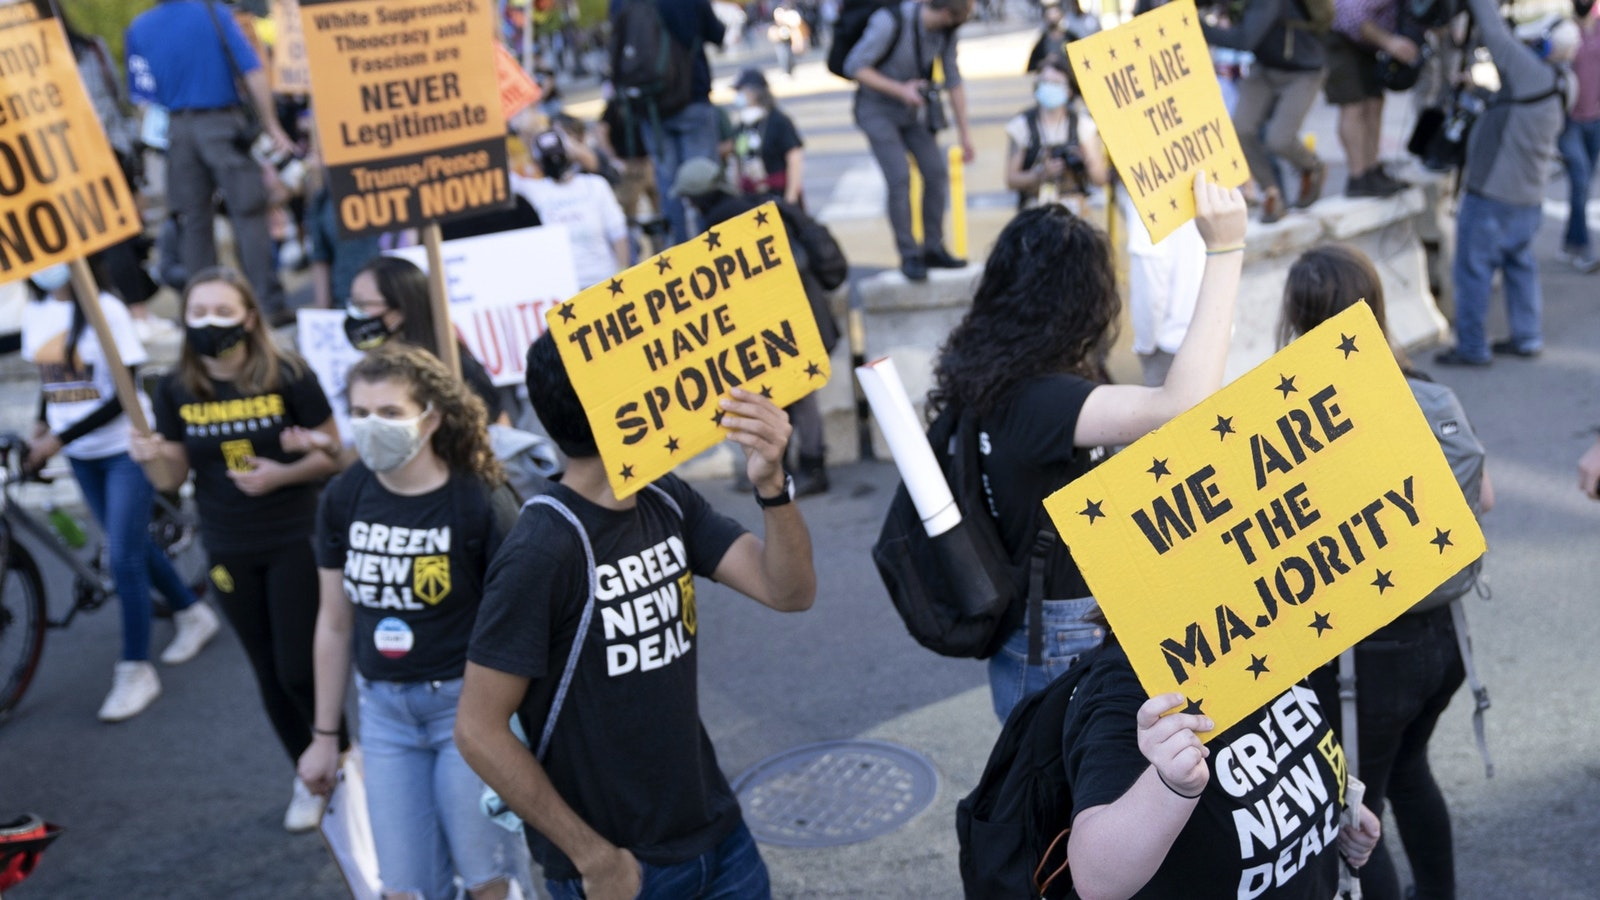 Election count demonstrators marching in Washington on Friday. Photo by Bloomberg.